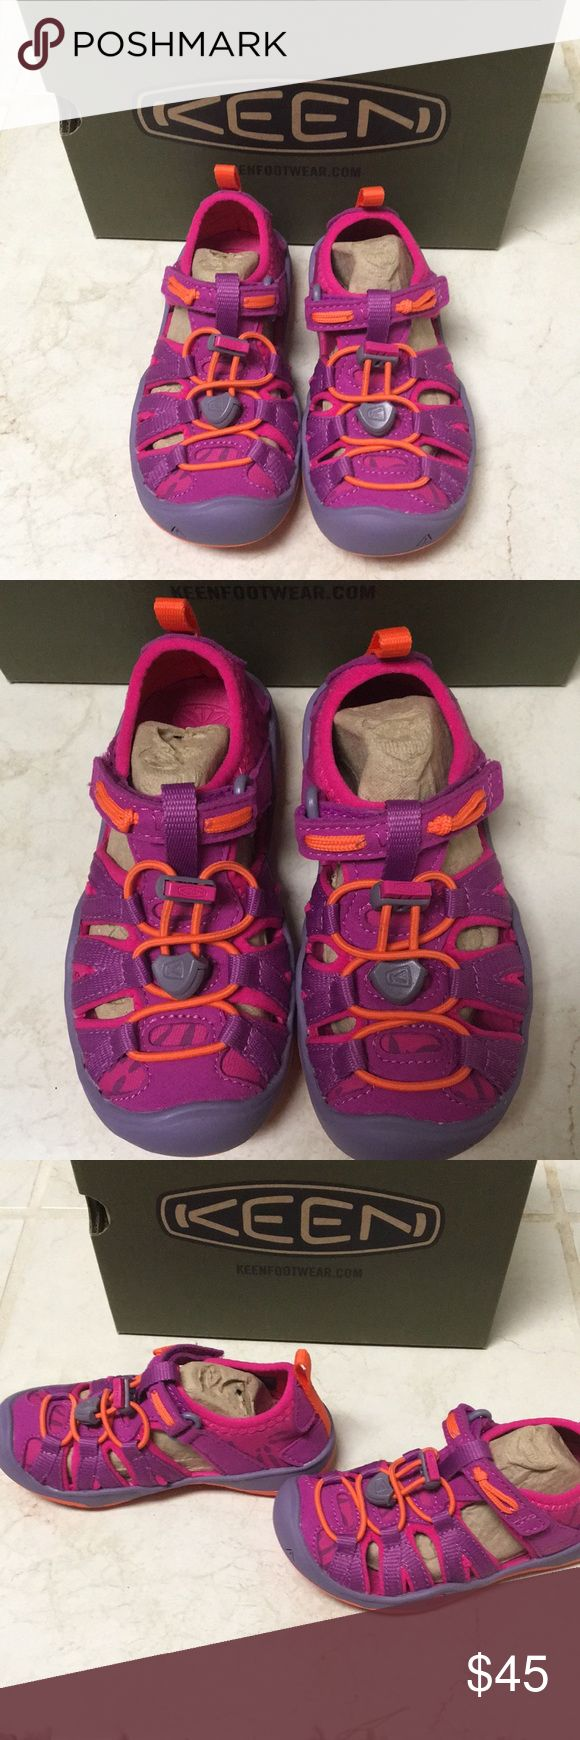 NWT Keen Toddler water shoes Keen Toddler Girl water shoes.  These are perfect for splash parks, the beach, water parks, and wading in creeks, and other fun water play for kids.  The style is moxie sandal.  Size 8 toddler.  NWT. Smoke free pet free home. Keen Shoes Water Shoes